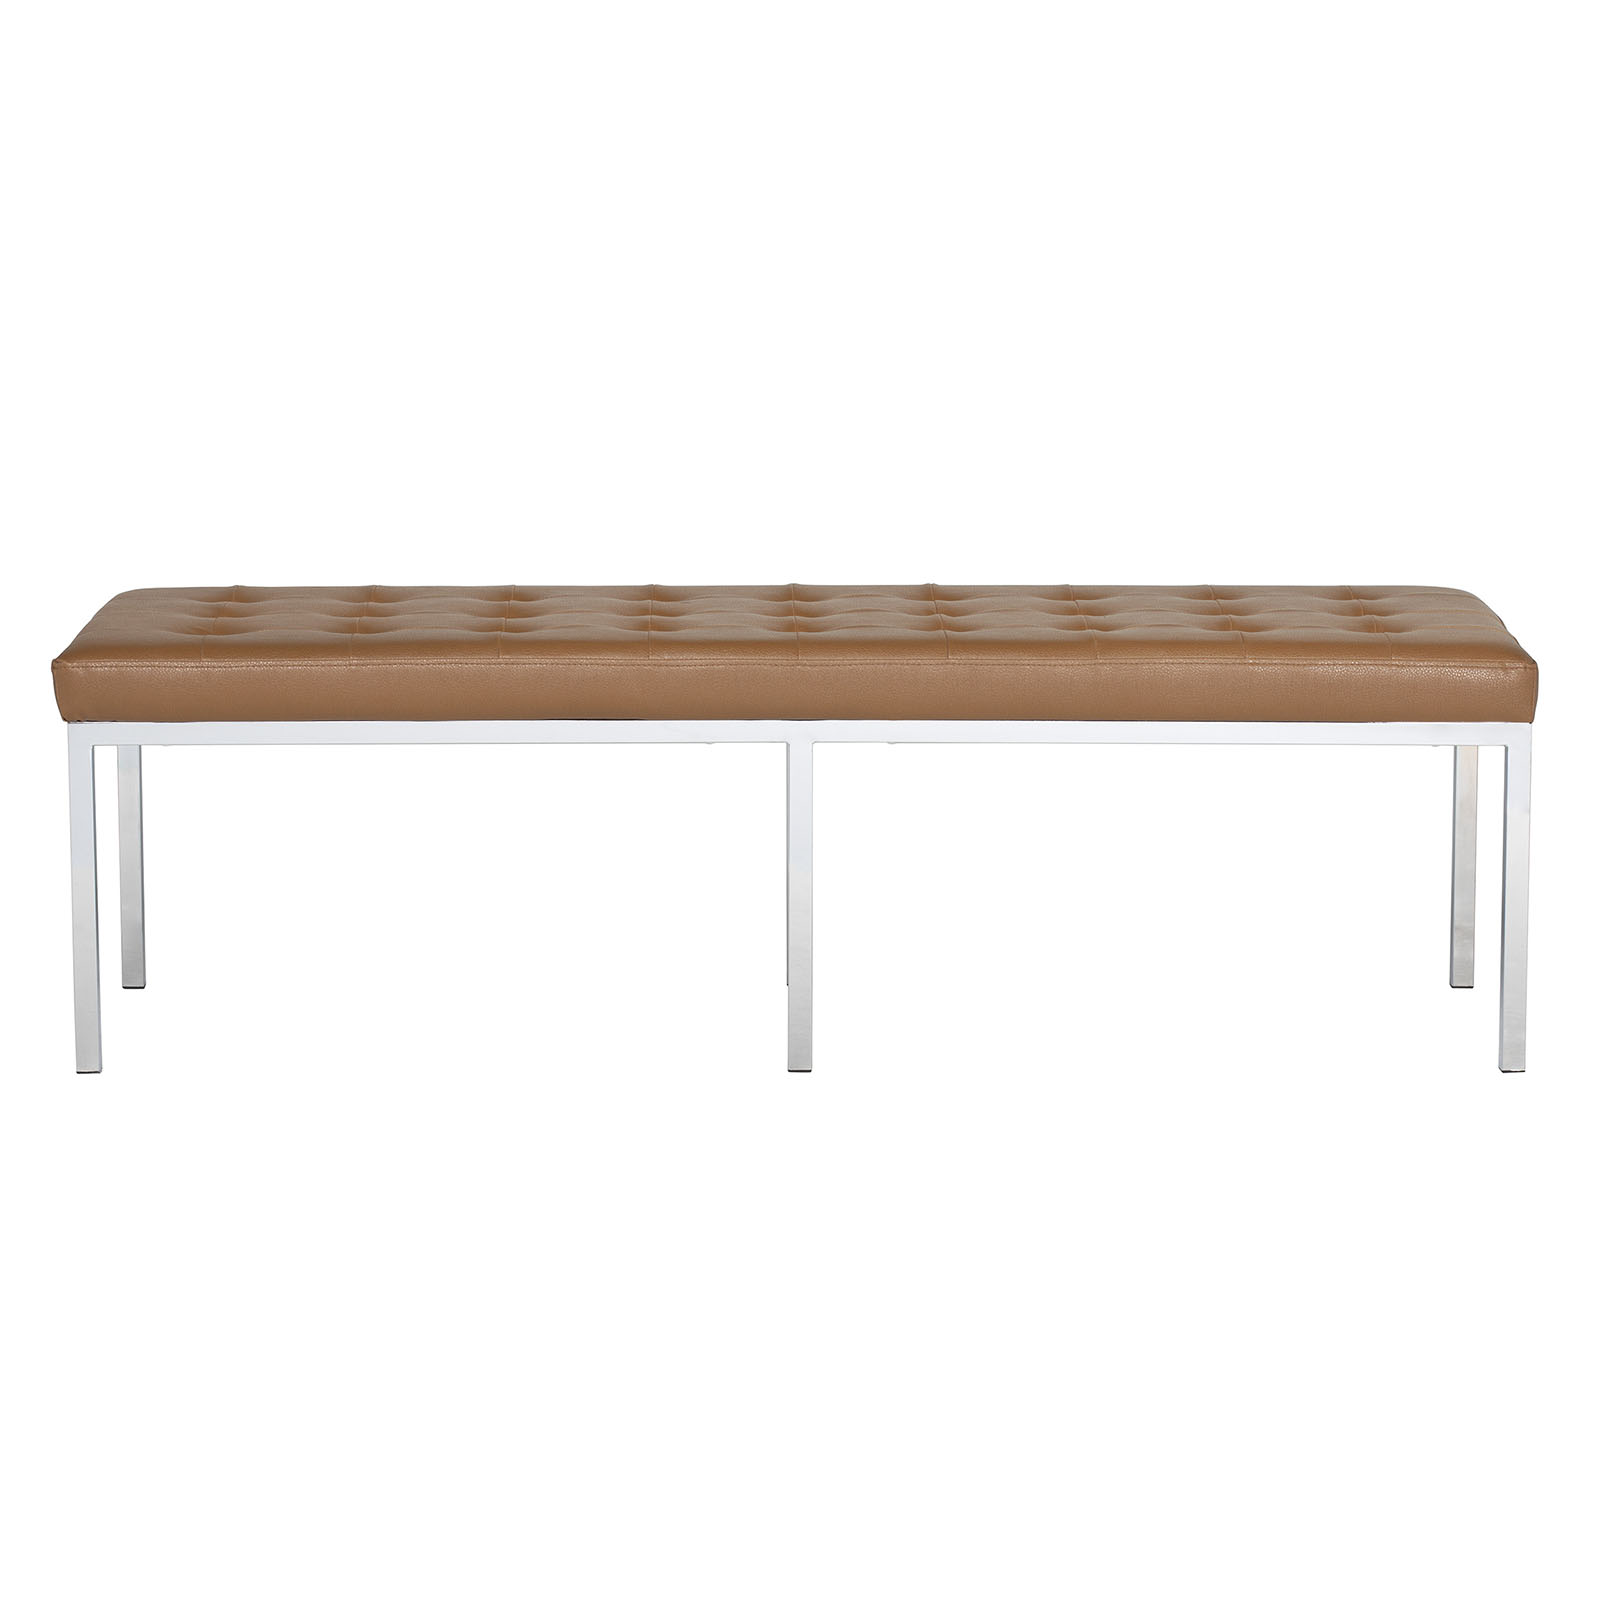 72040 Lintel 60 Inch Bench front